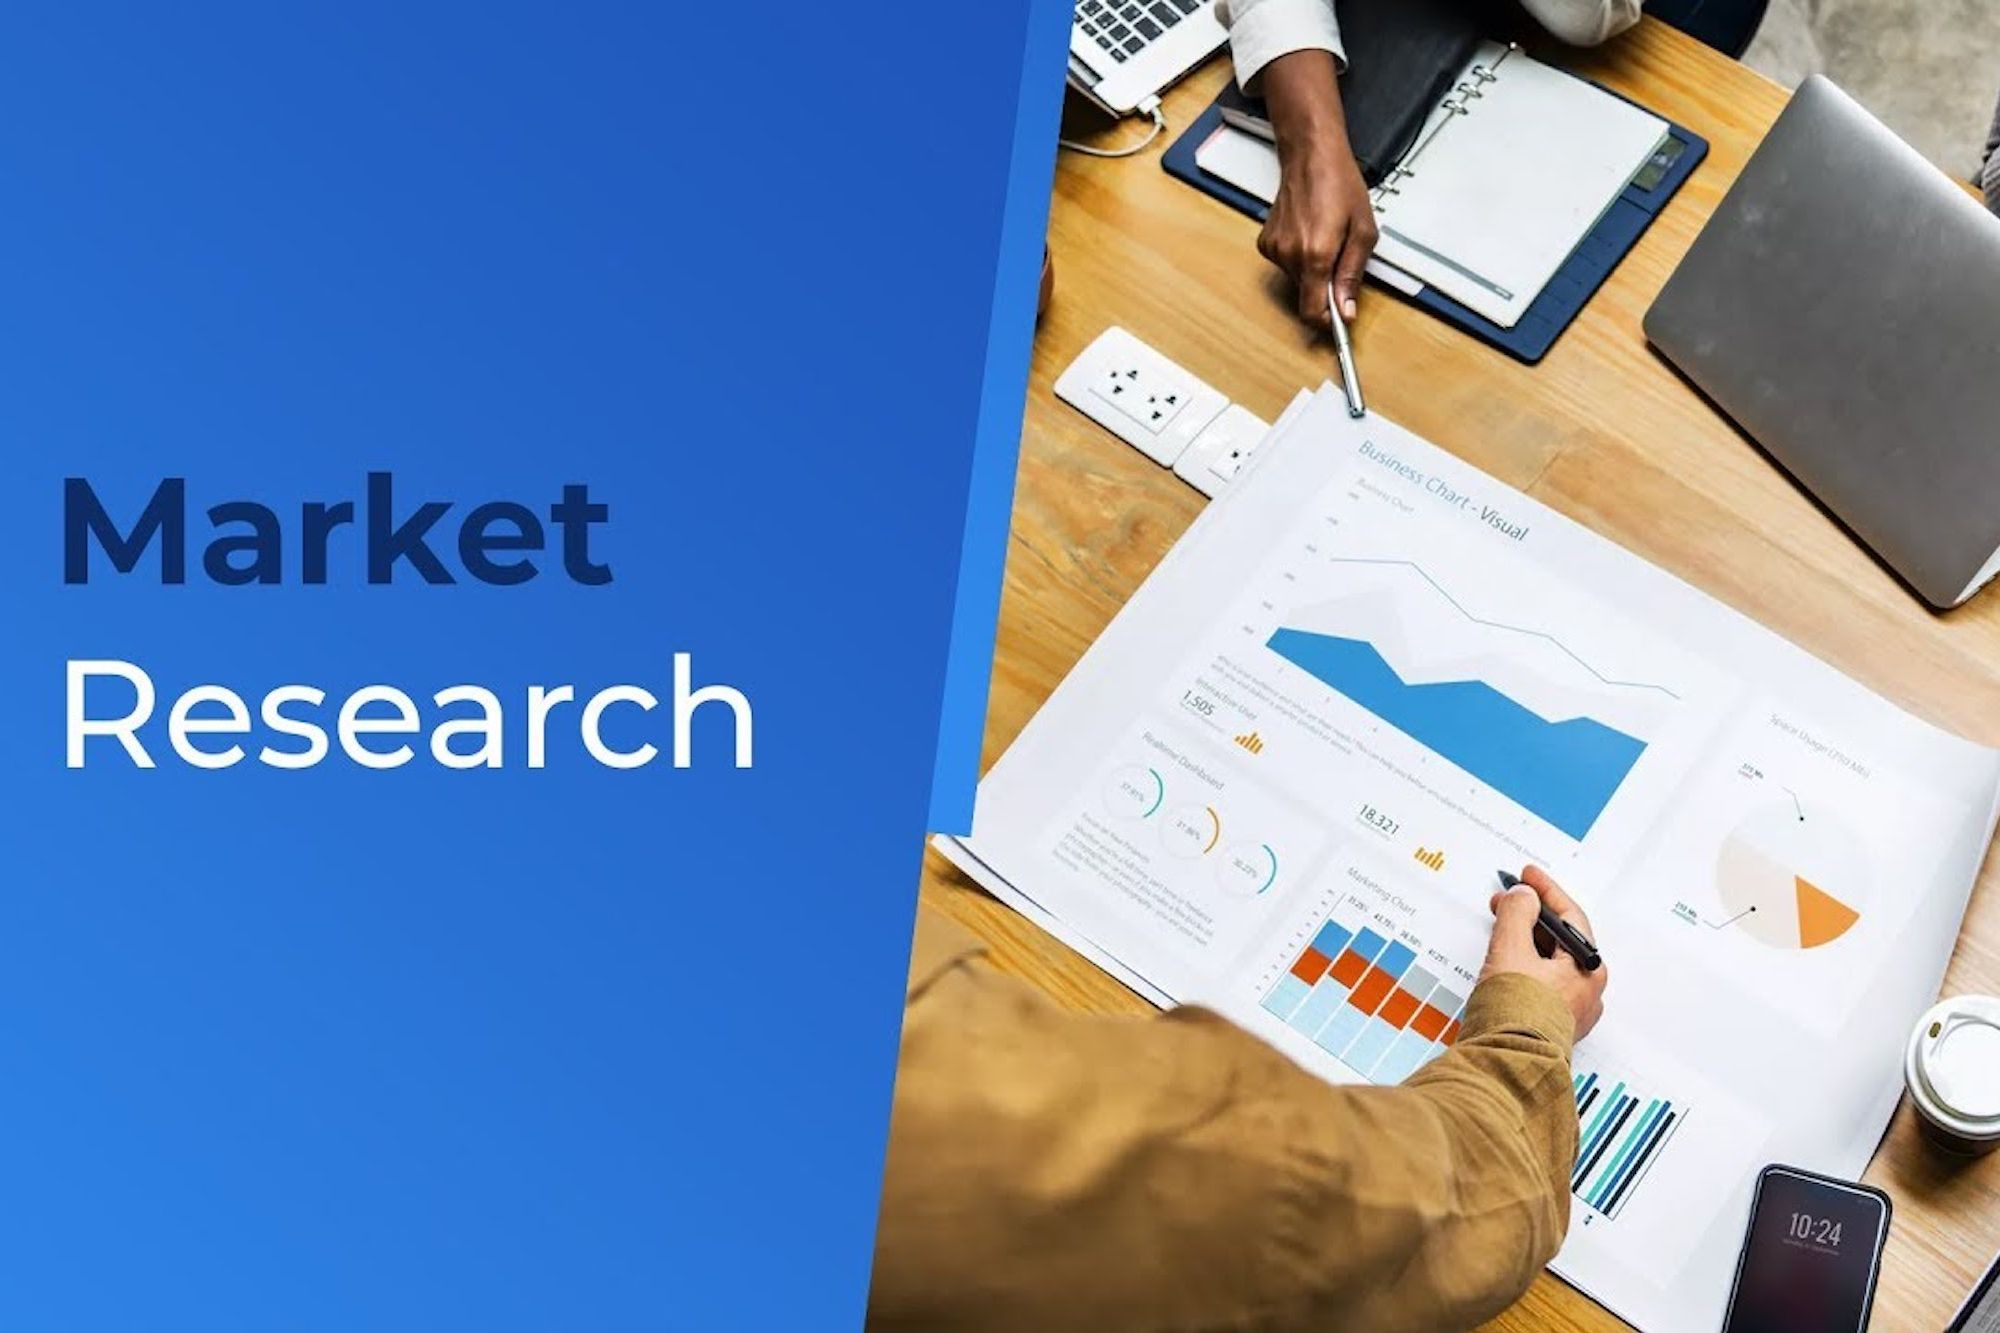 Have You Done Enough Research to Start Your Business?